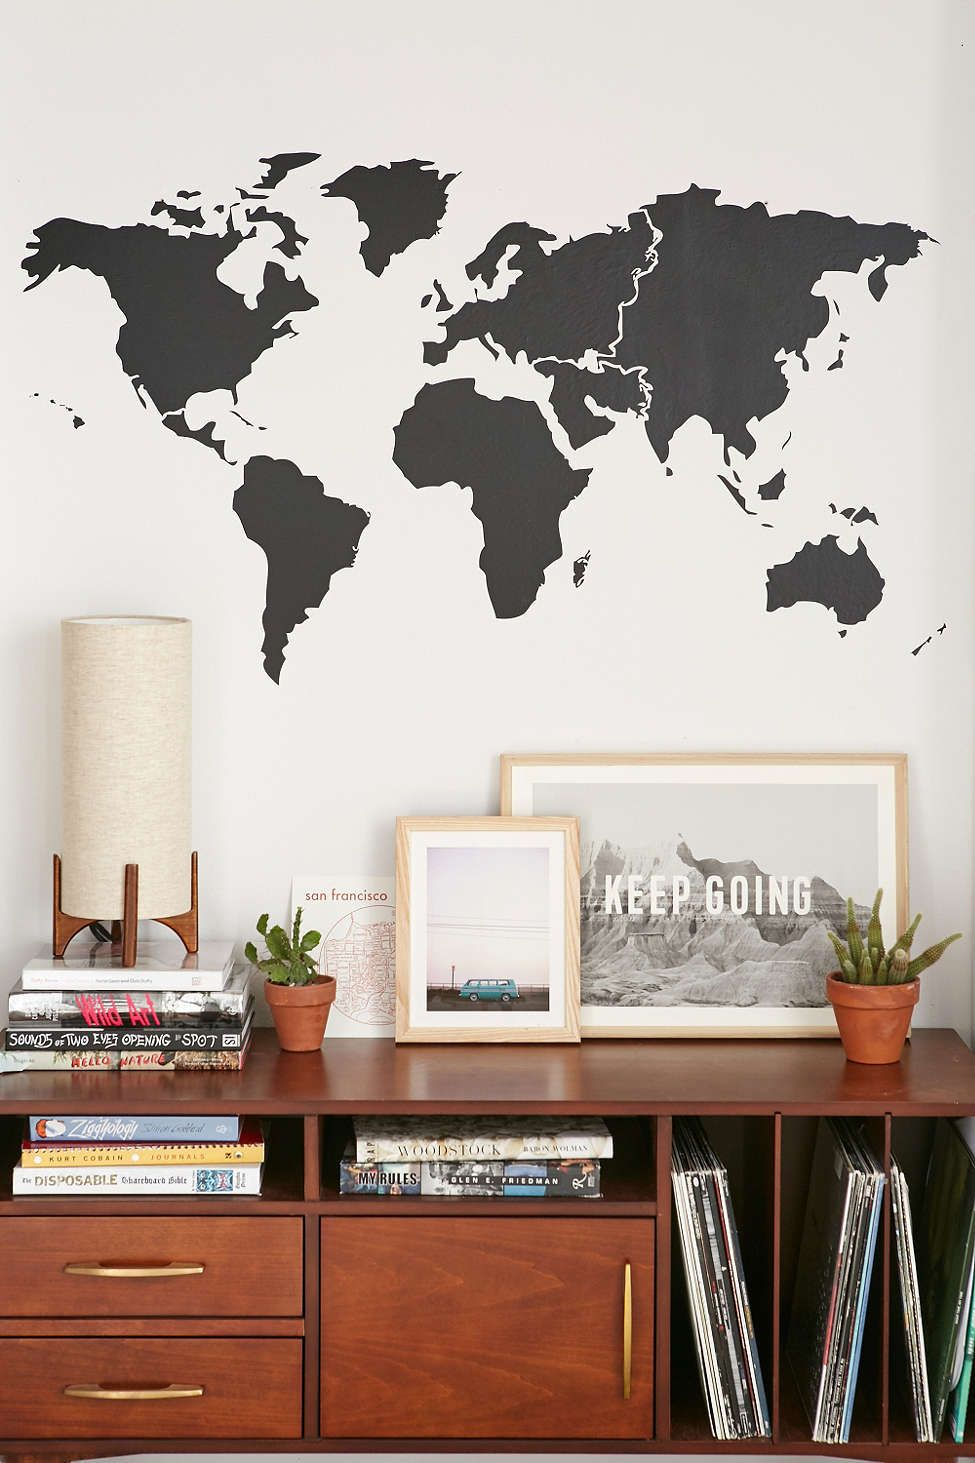 World Map Decorations Walls Need Love World Map Wall Decal Wall Space Home Decor